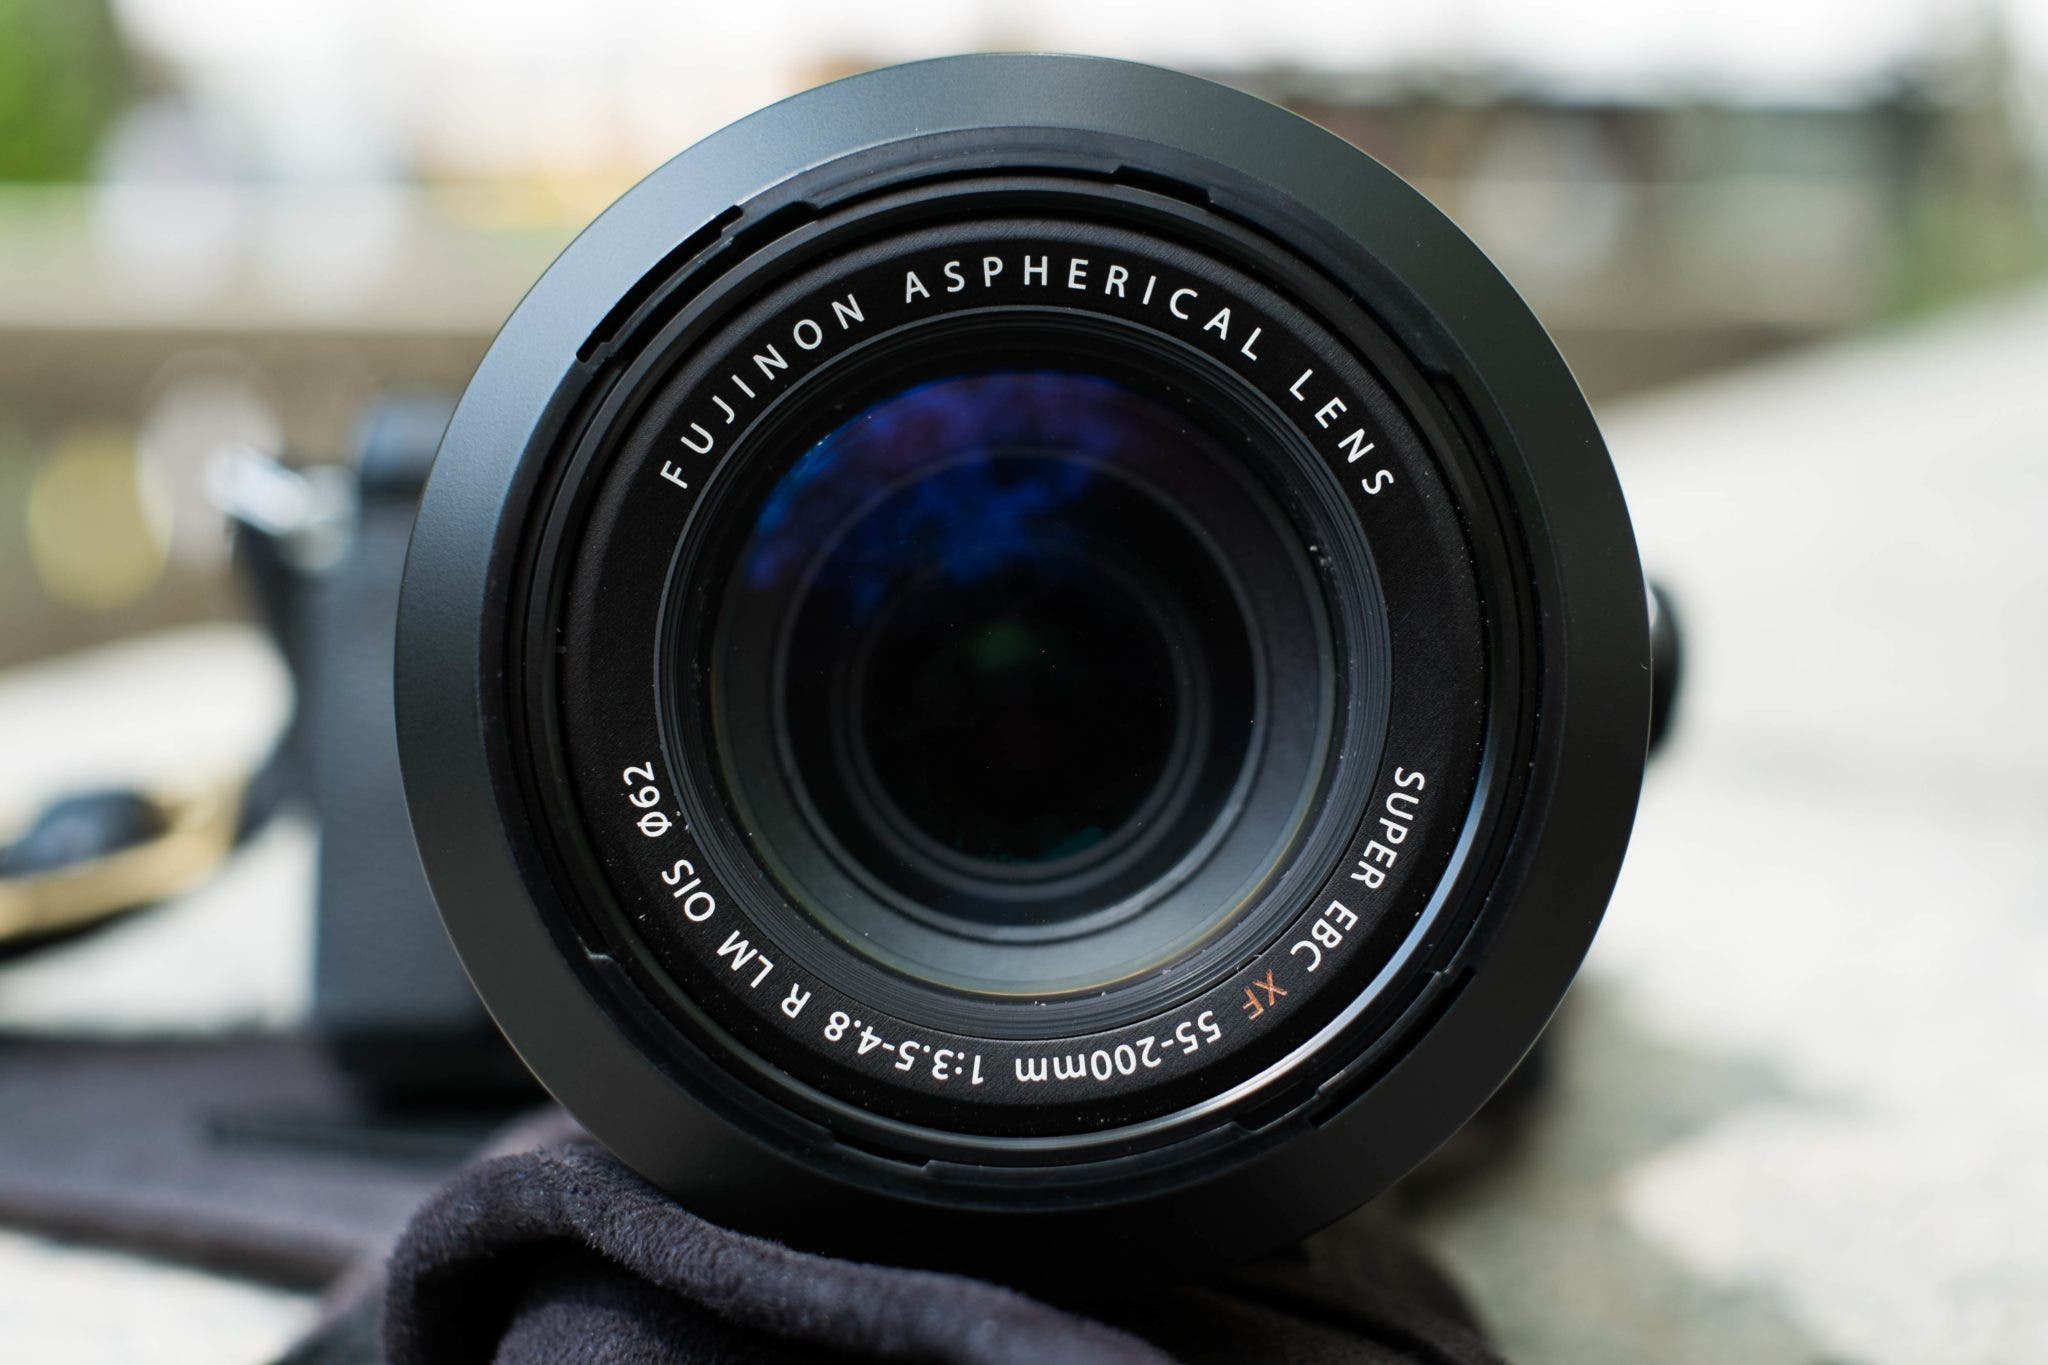 Review: Fujifilm XF 55-200mm f3.5-4.8 R LM OIS (X Mount)